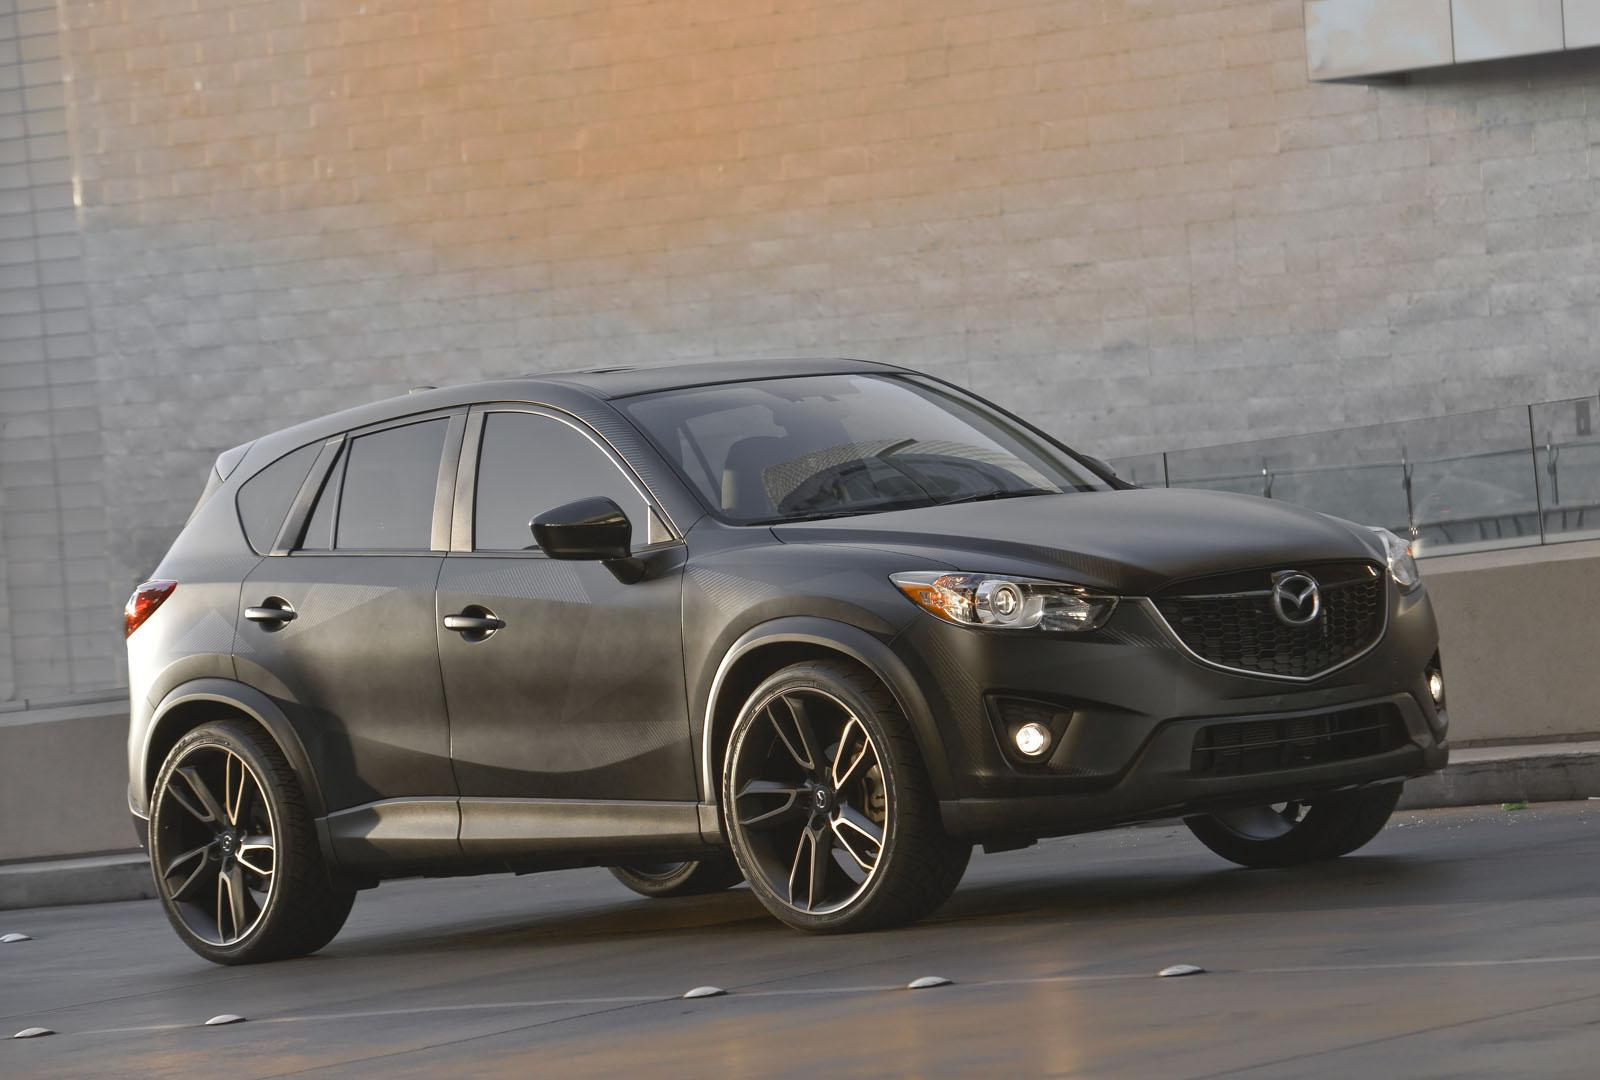 ... cx 5 dempsey and the cx 5 180 at this year